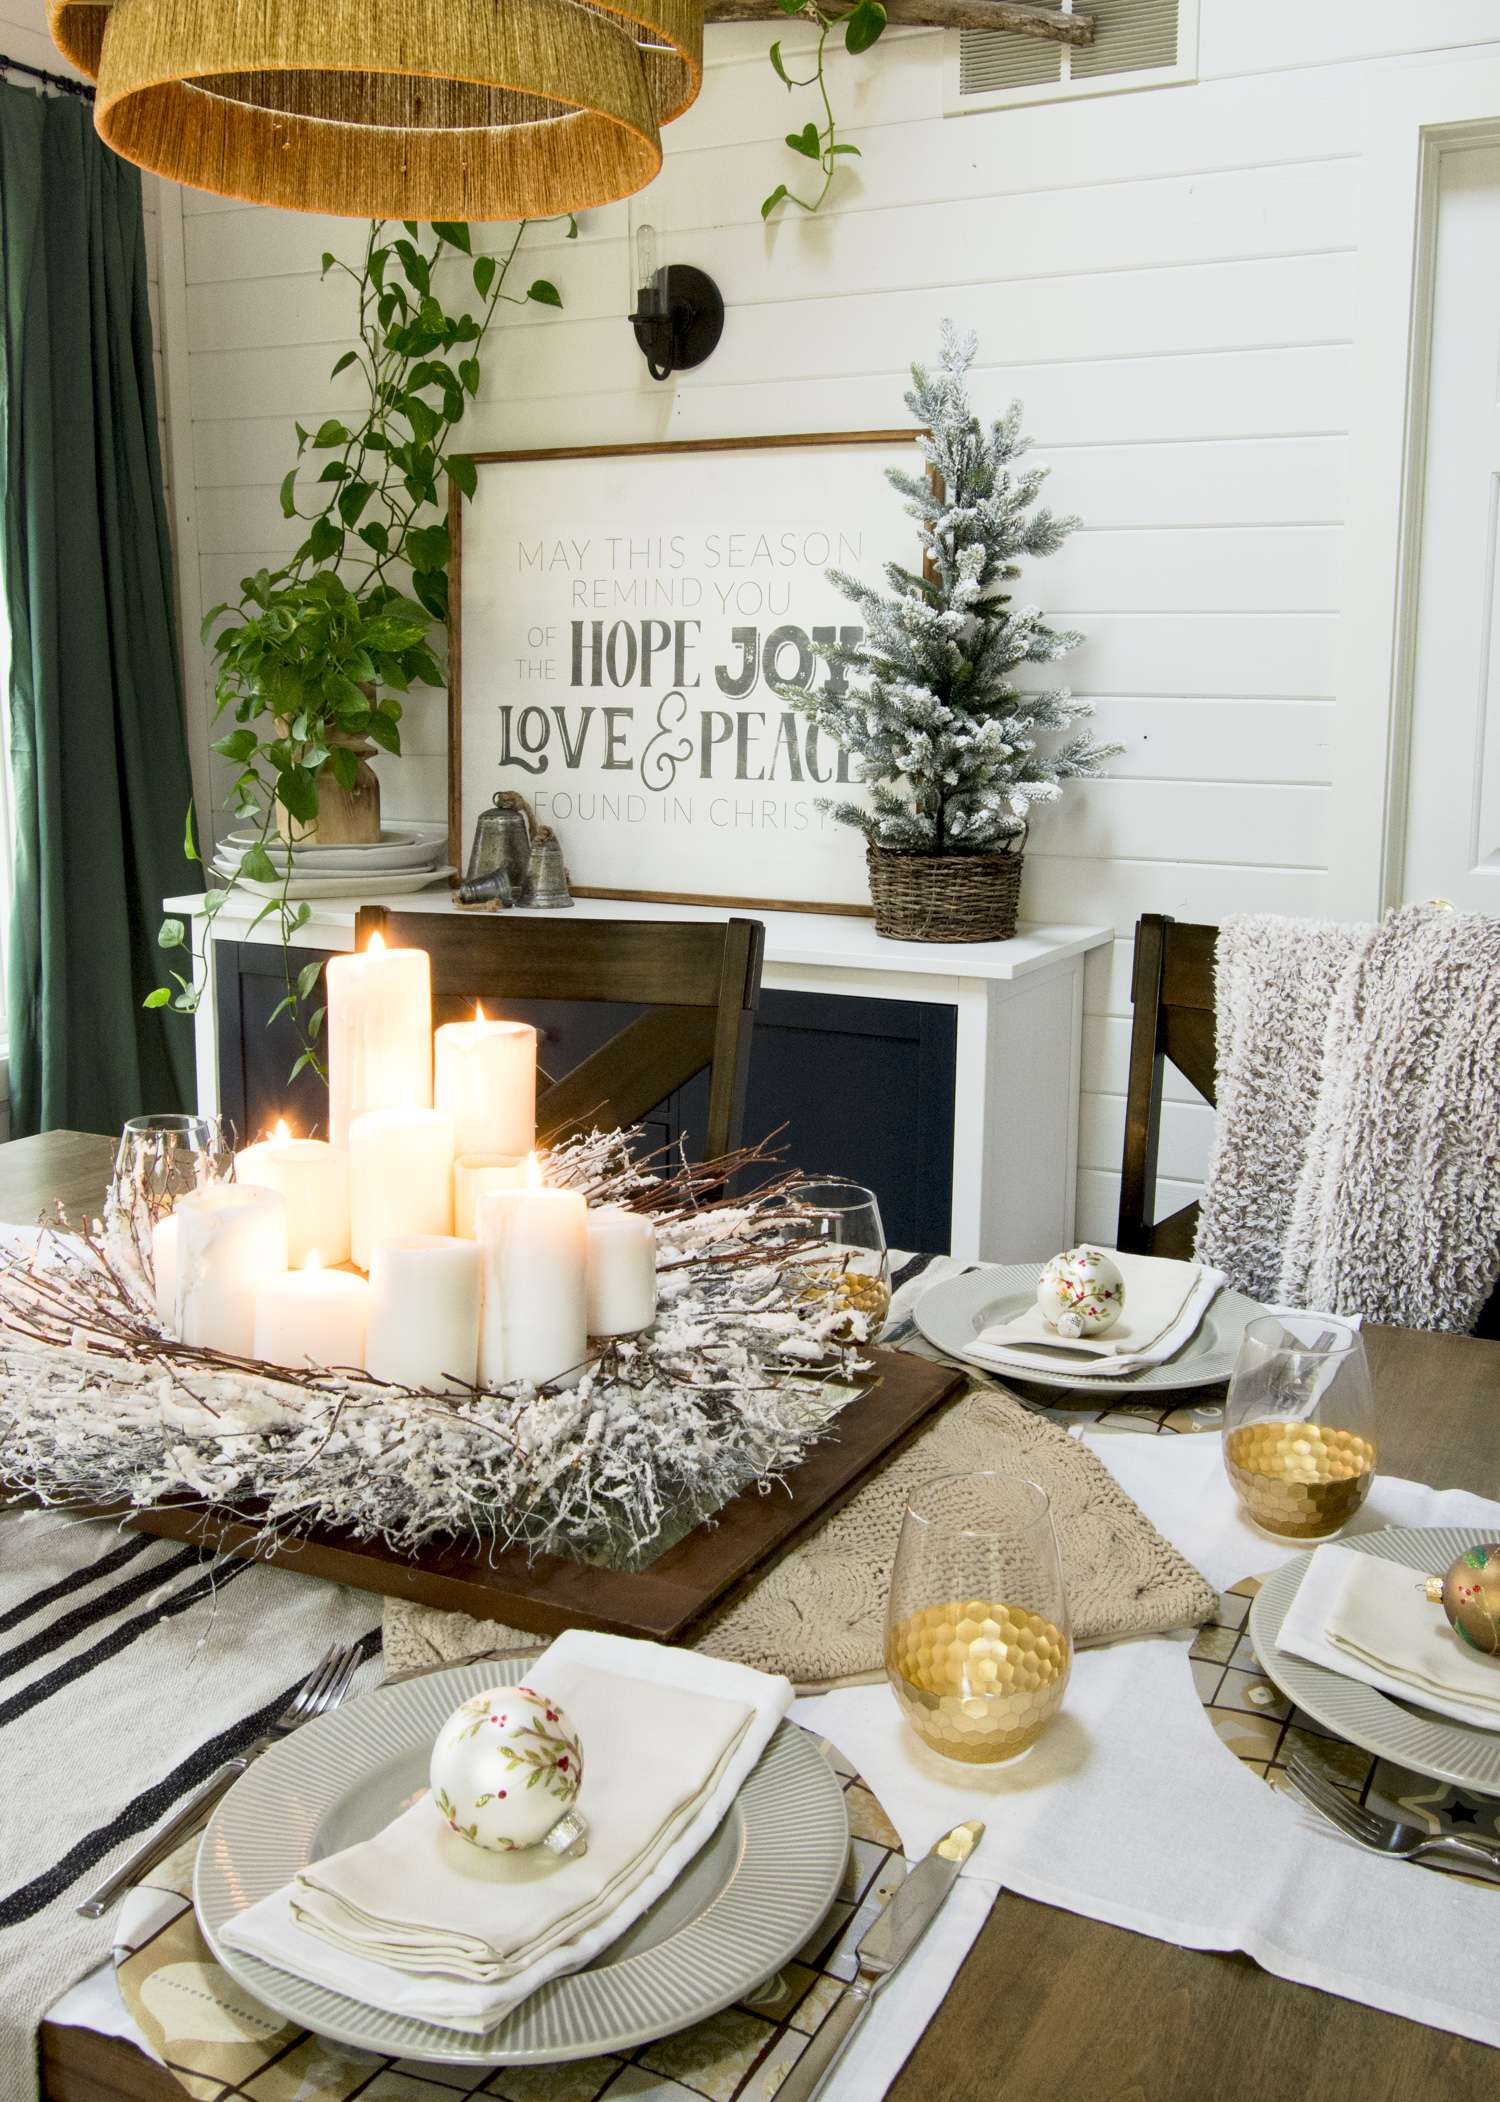 Christmas table decor ideas.